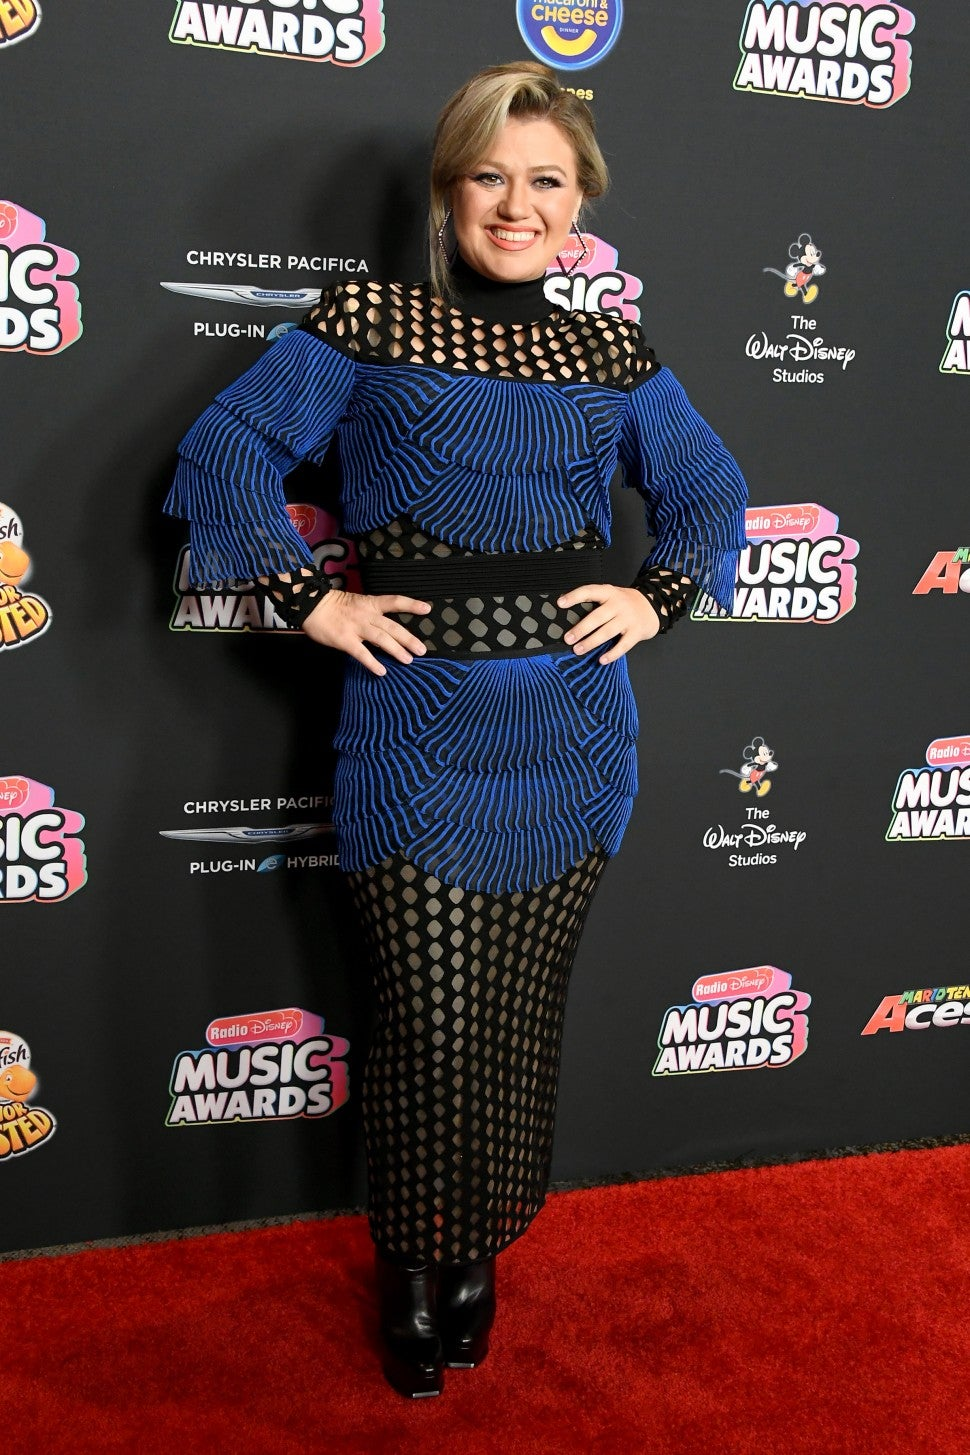 Kelly Clarkson in blue dress at Radio Disney Music Awards